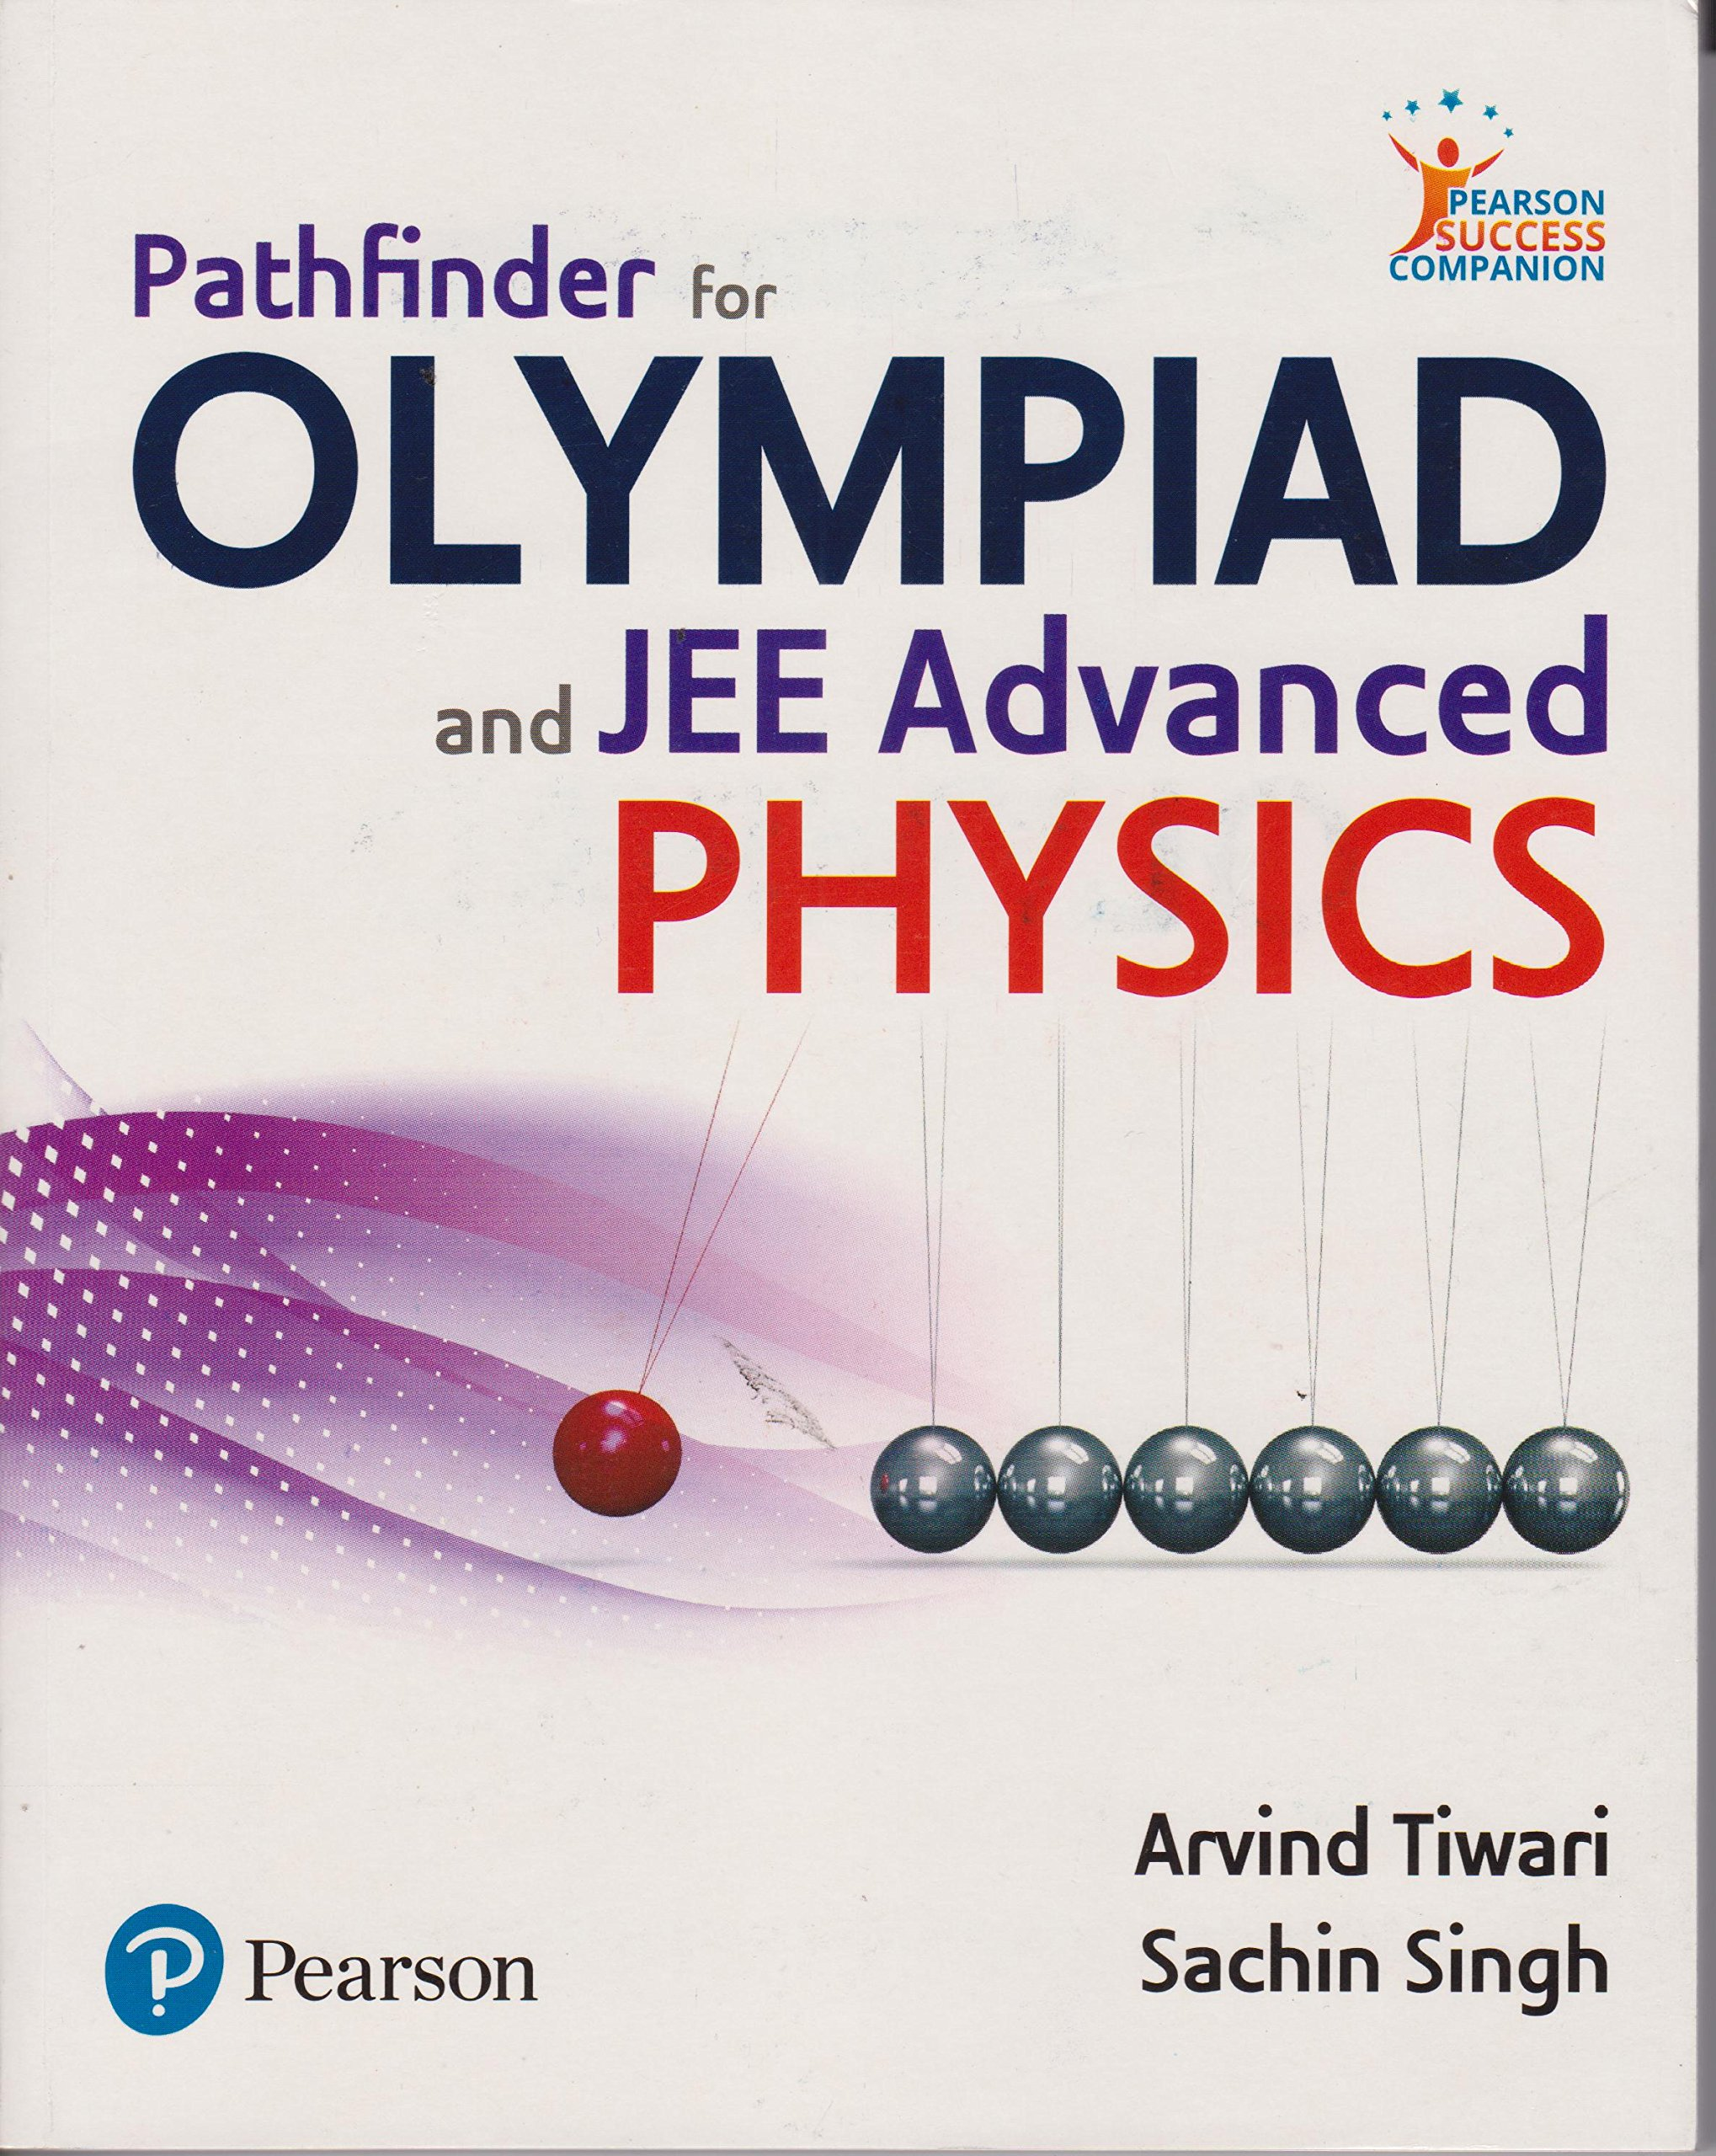 Buy pathfinder for olympiad jeephysics book online at low prices buy pathfinder for olympiad jeephysics book online at low prices in india pathfinder for olympiad jeephysics reviews ratings amazon fandeluxe Images